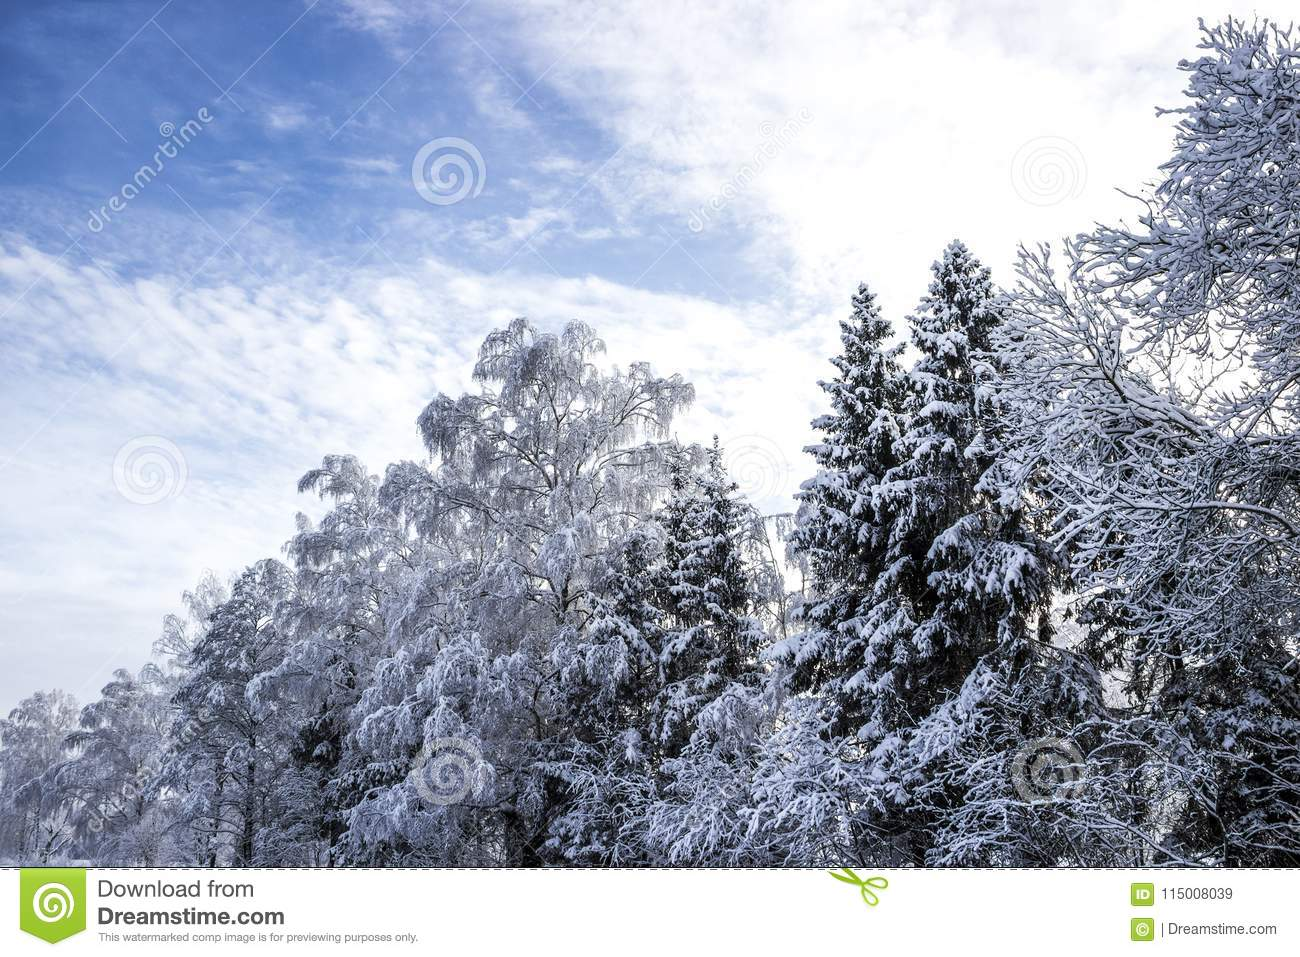 Forest Christmas Trees Birch Snowy Landscape Diagonal Winter Snow Sun Wallpaper Horizontal Background